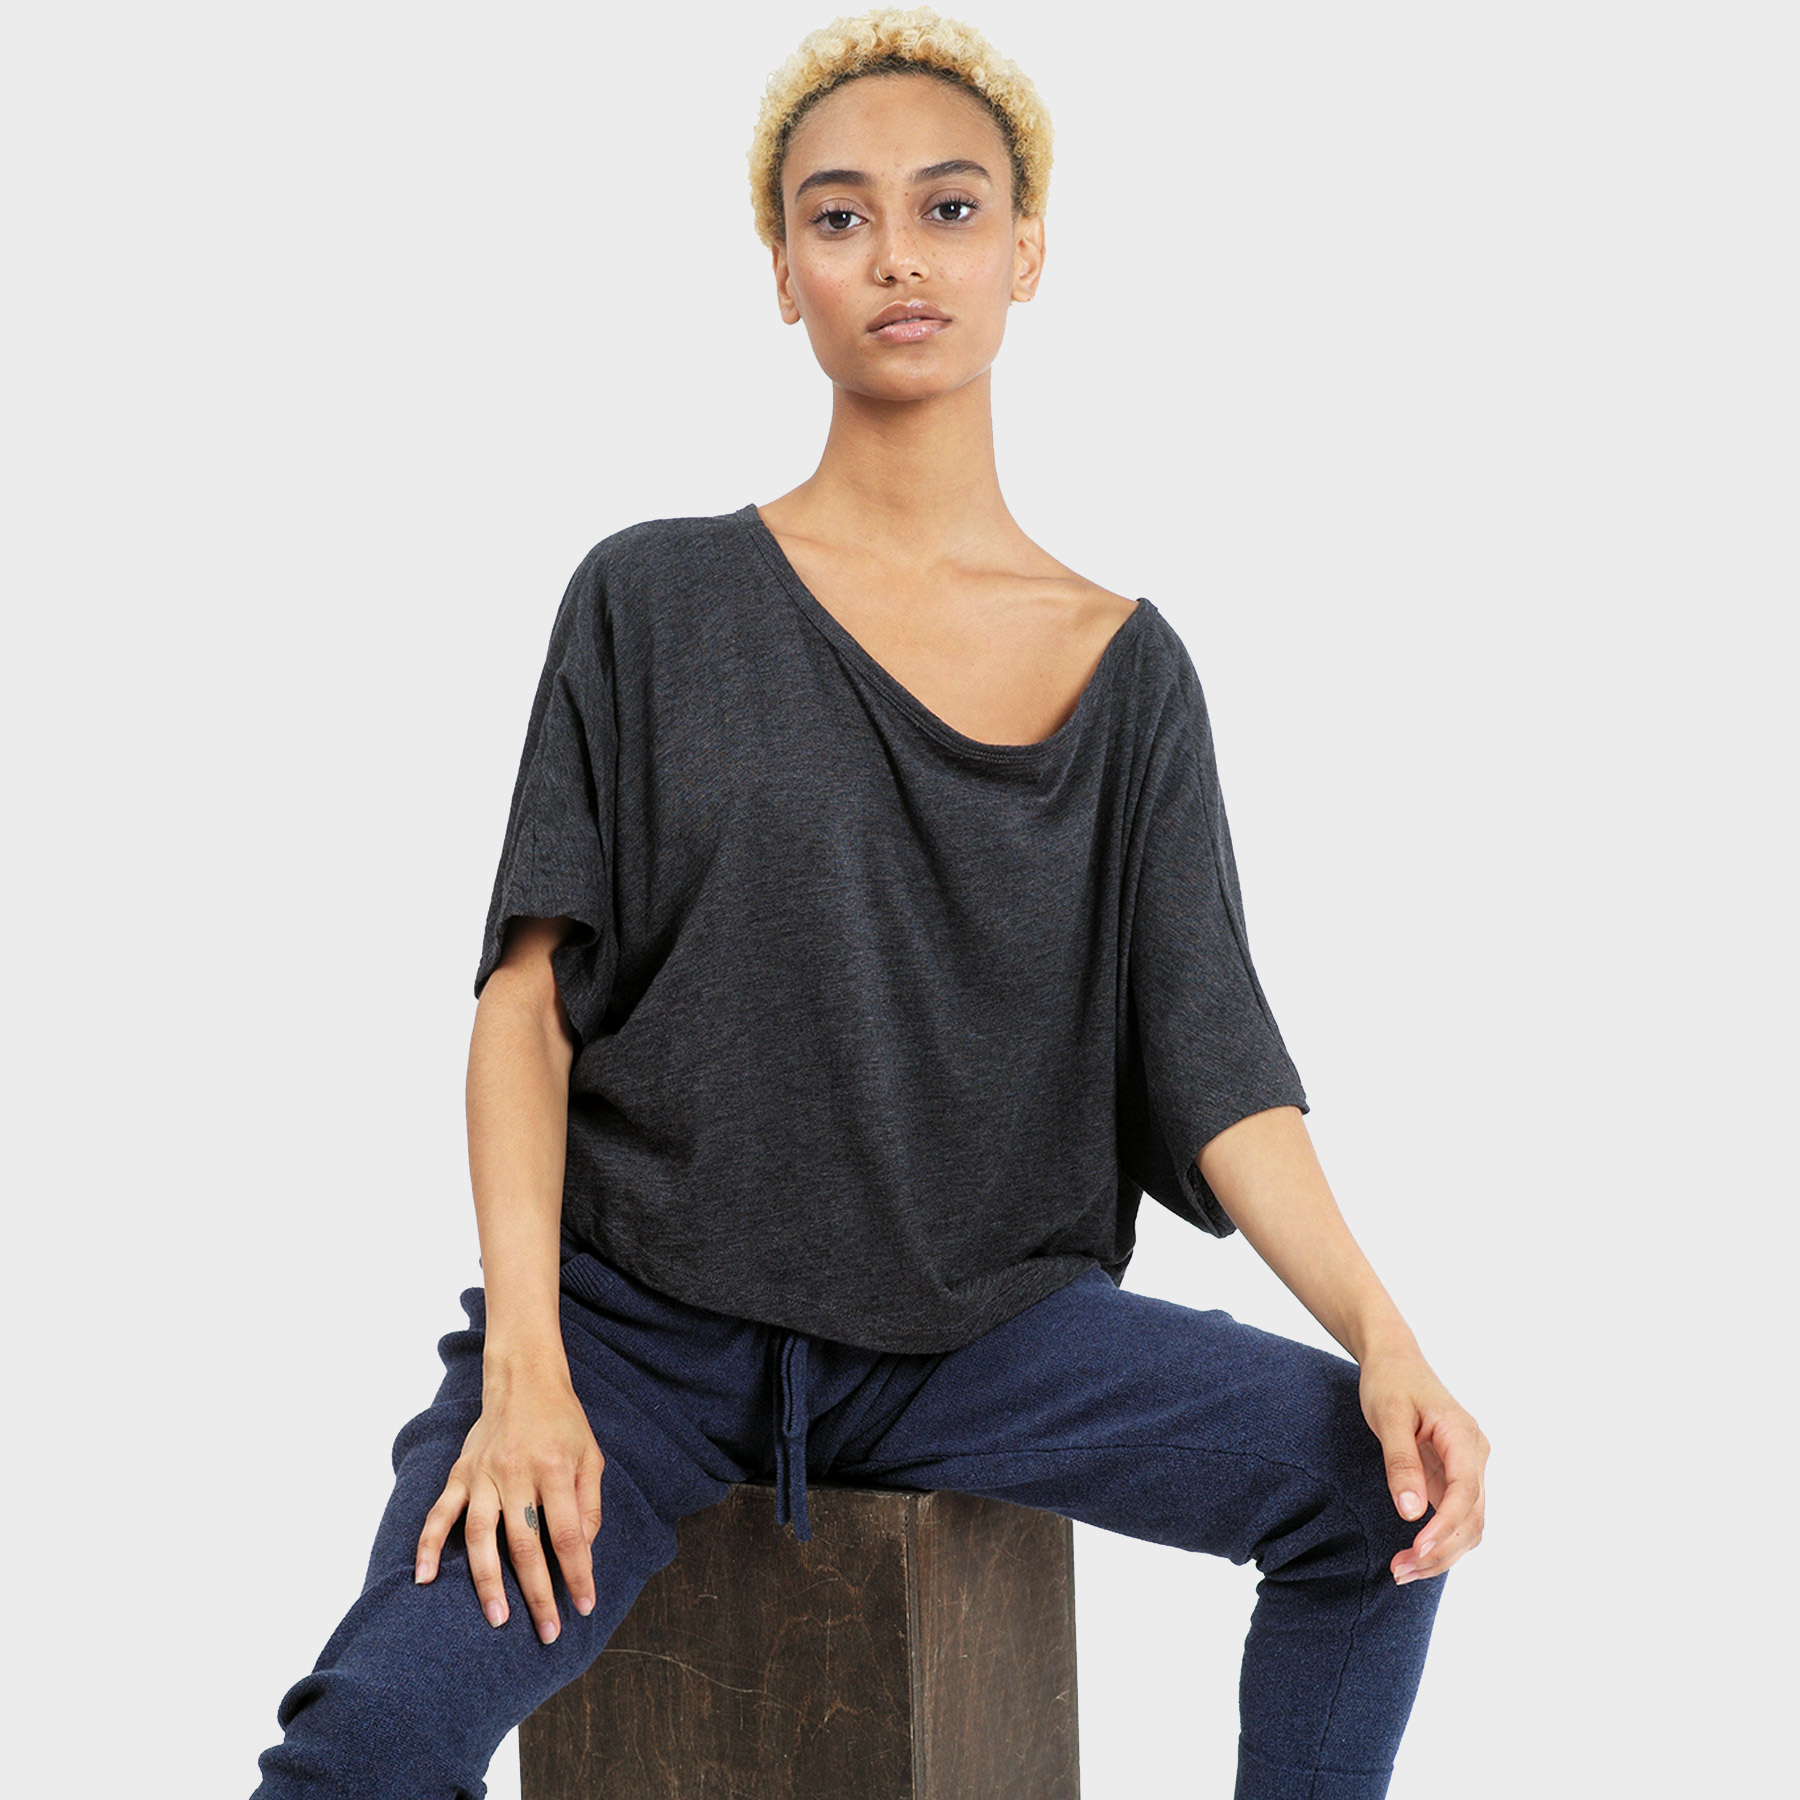 Lumi Crop Top – Heather Charcoal